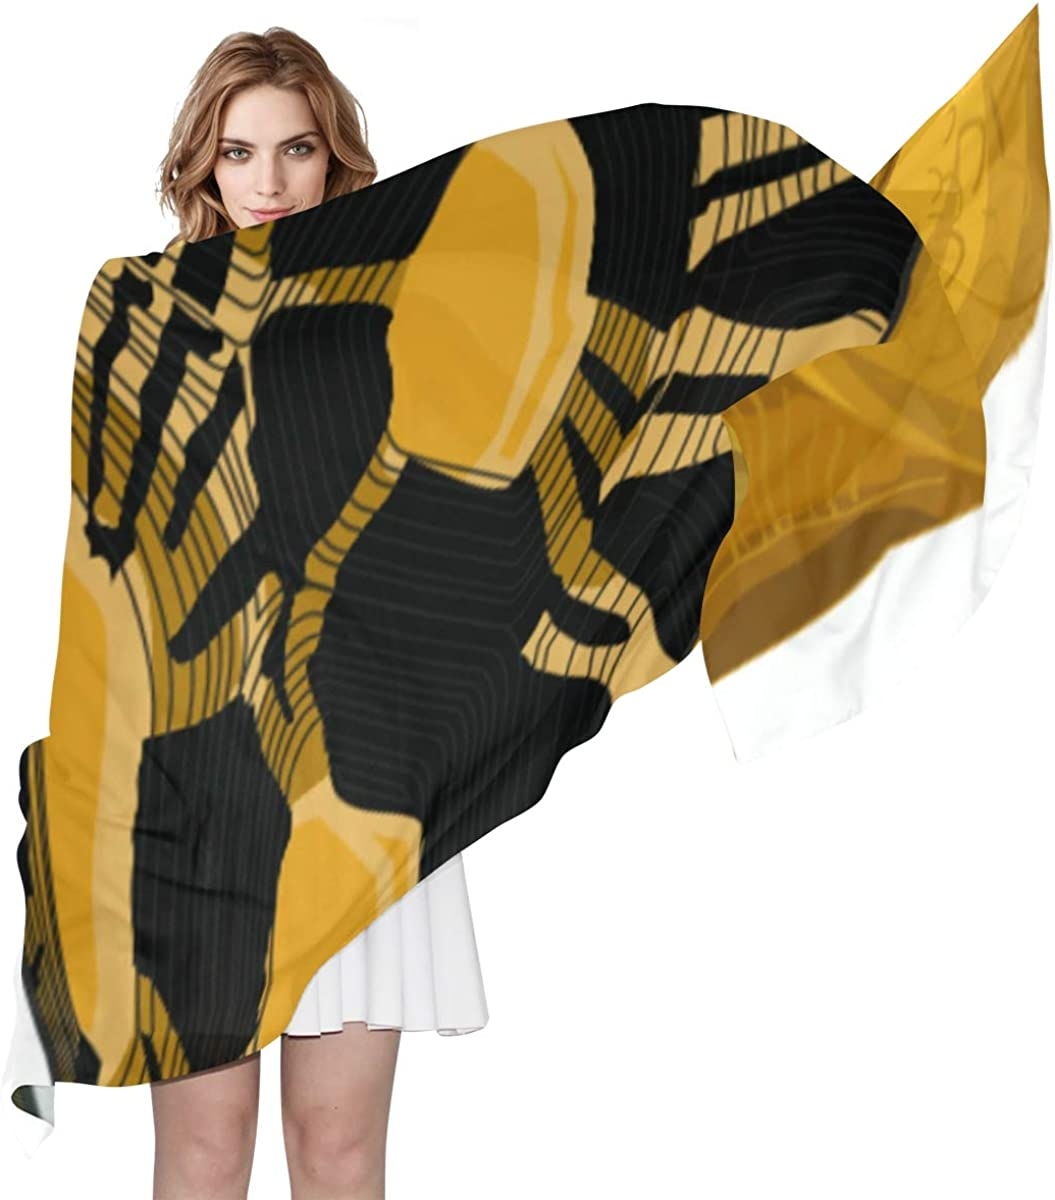 Giant Turtles On Land Unique Fashion Scarf For Women Lightweight Fashion Fall Winter Print Scarves Shawl Wraps Gifts For Early Spring